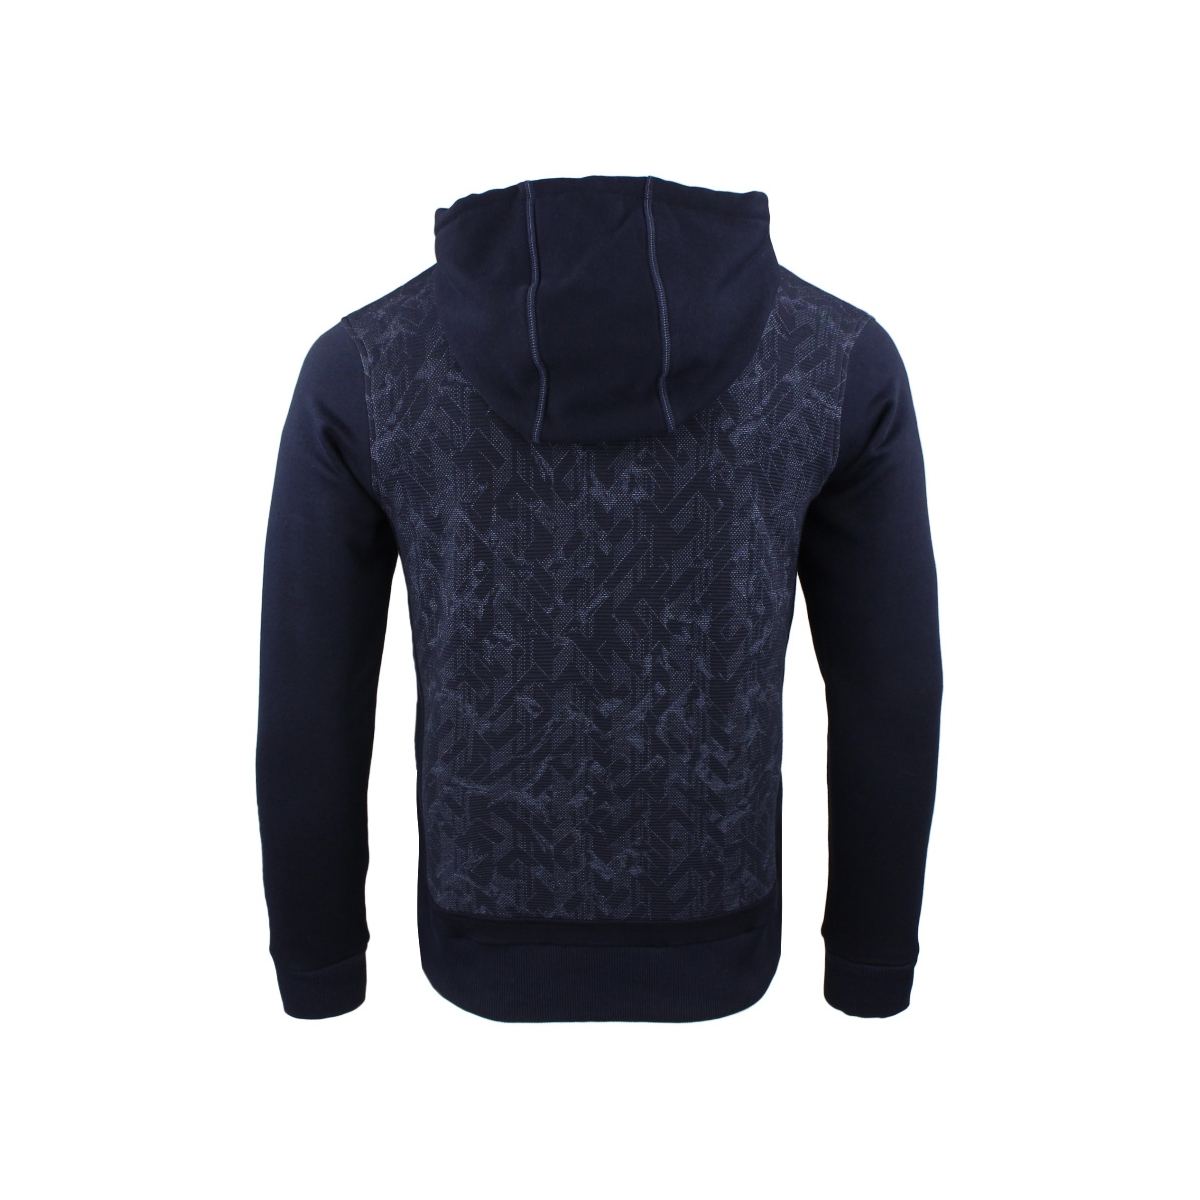 sweater 77081 gabbiano sweater navy